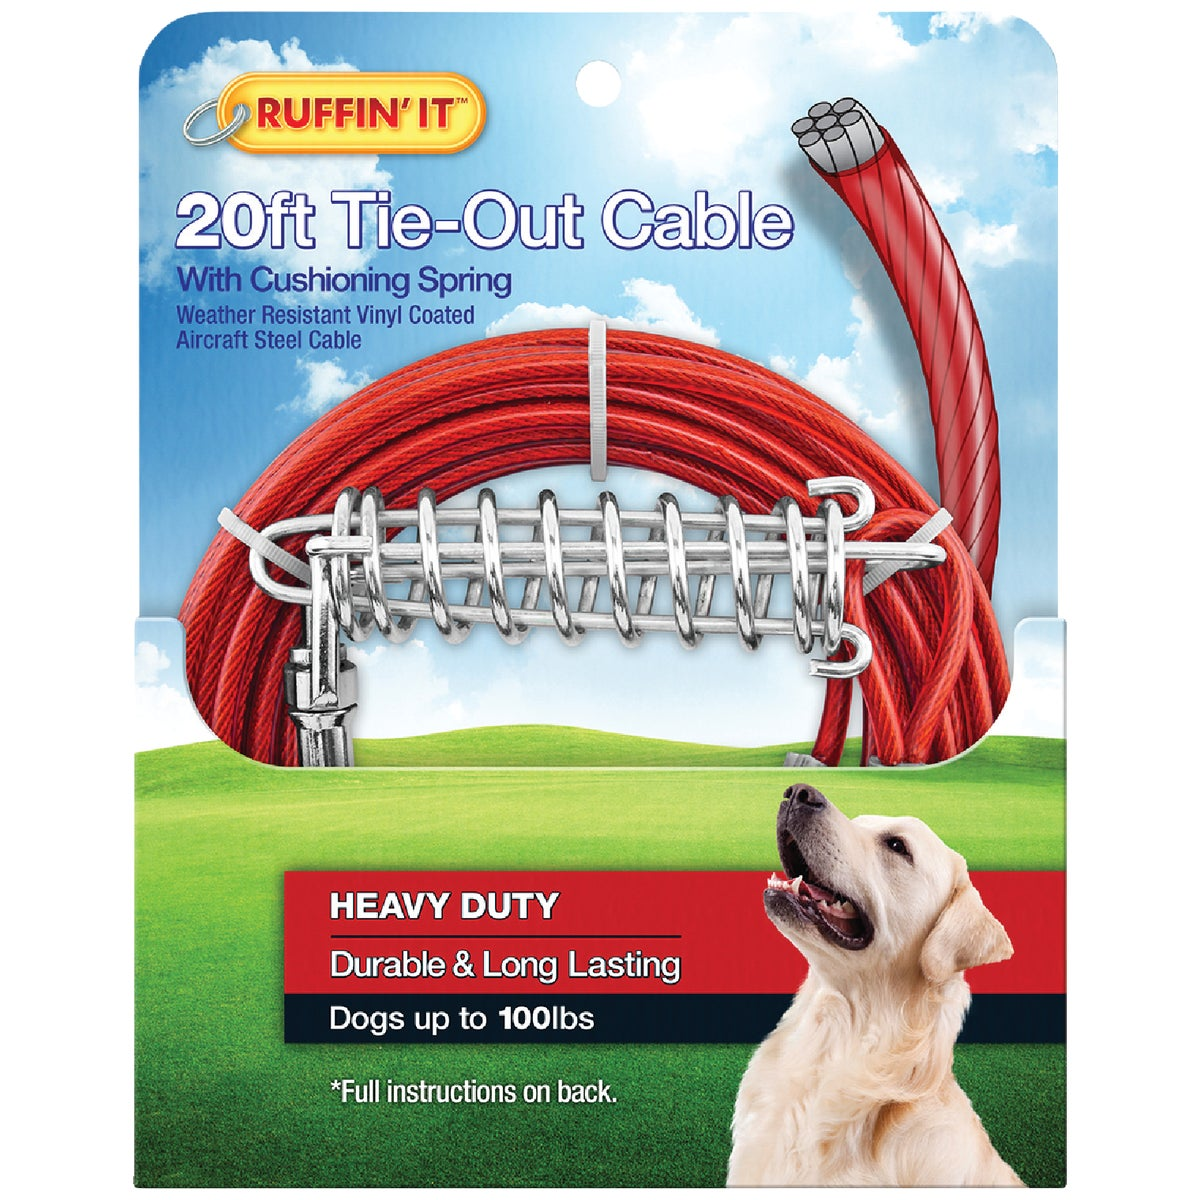 20' TIE-OUT CABLE - 29220 by Westminster Pet